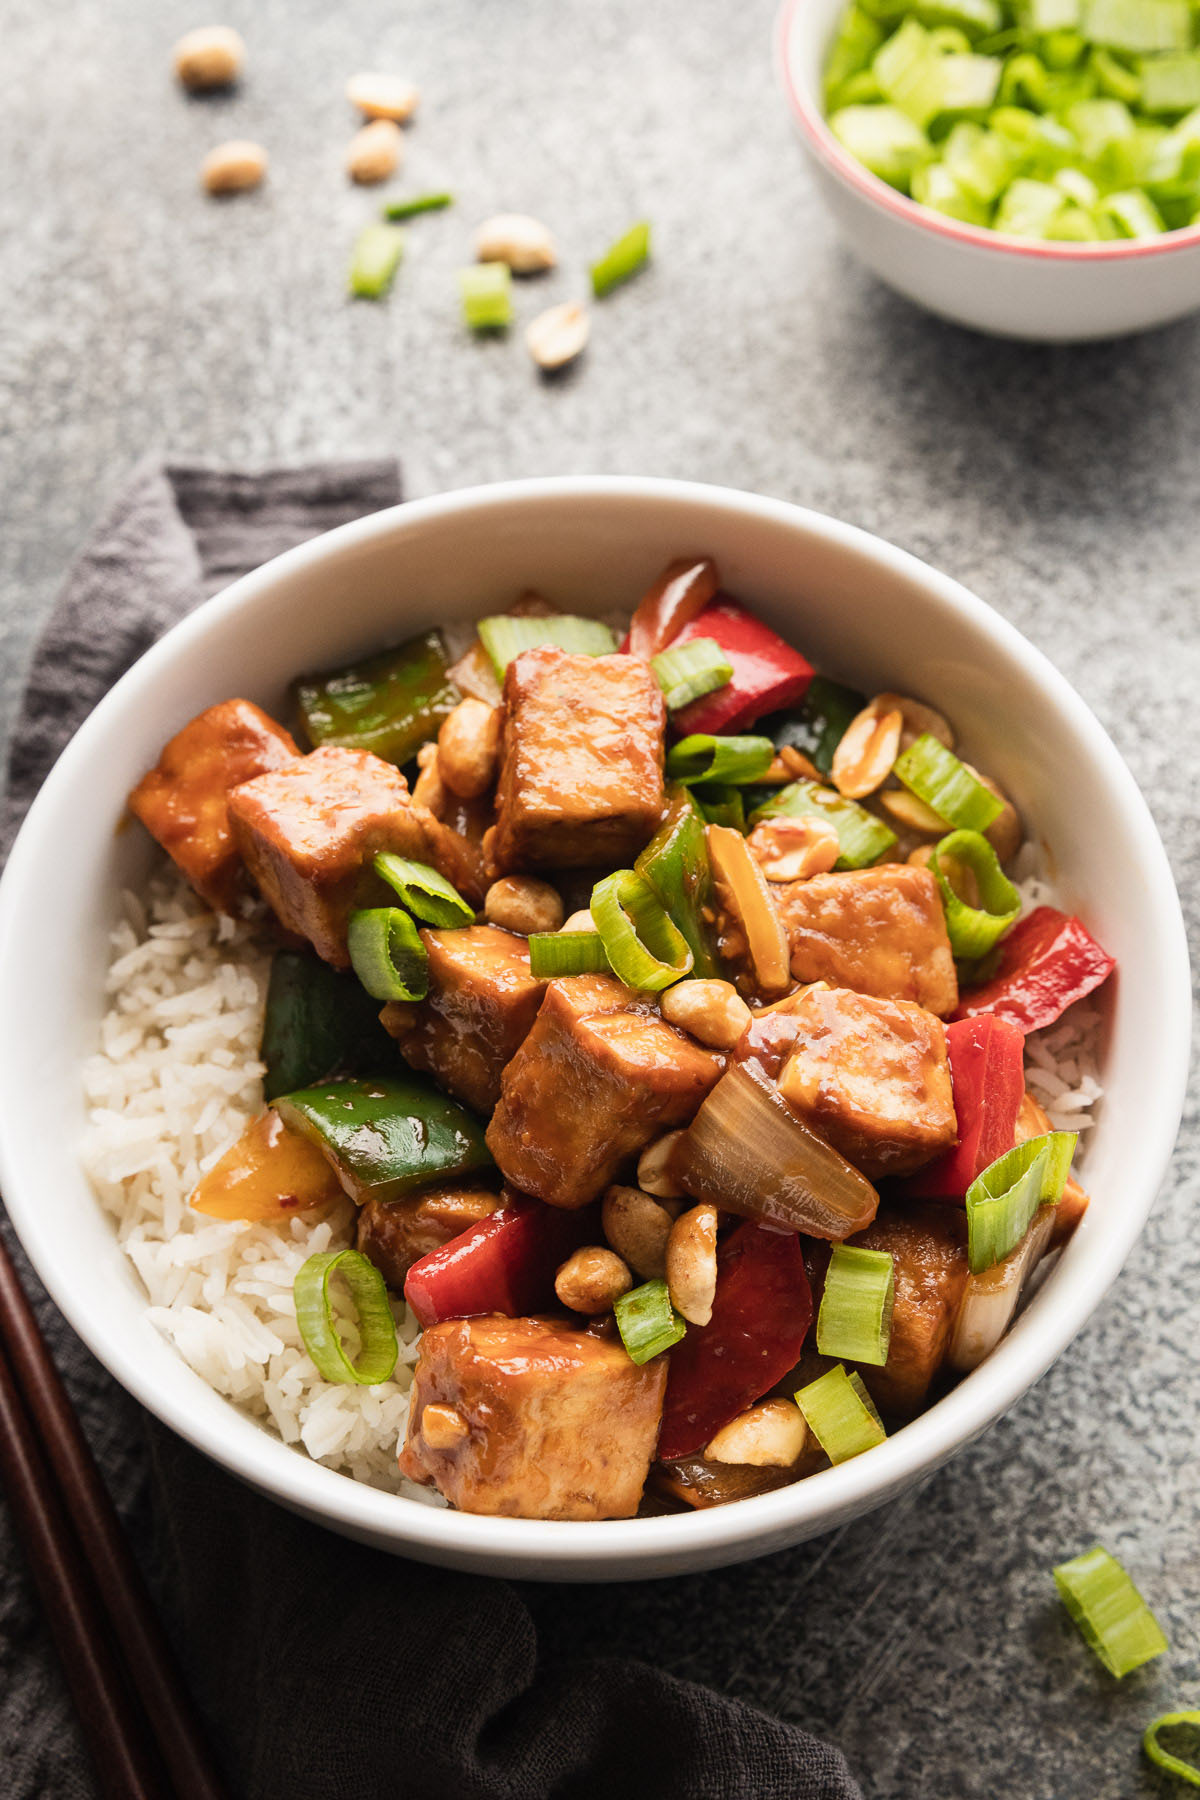 image of kung pao tofu in a bowl with white rice and vegetables and a small bowl of green onions in right corner